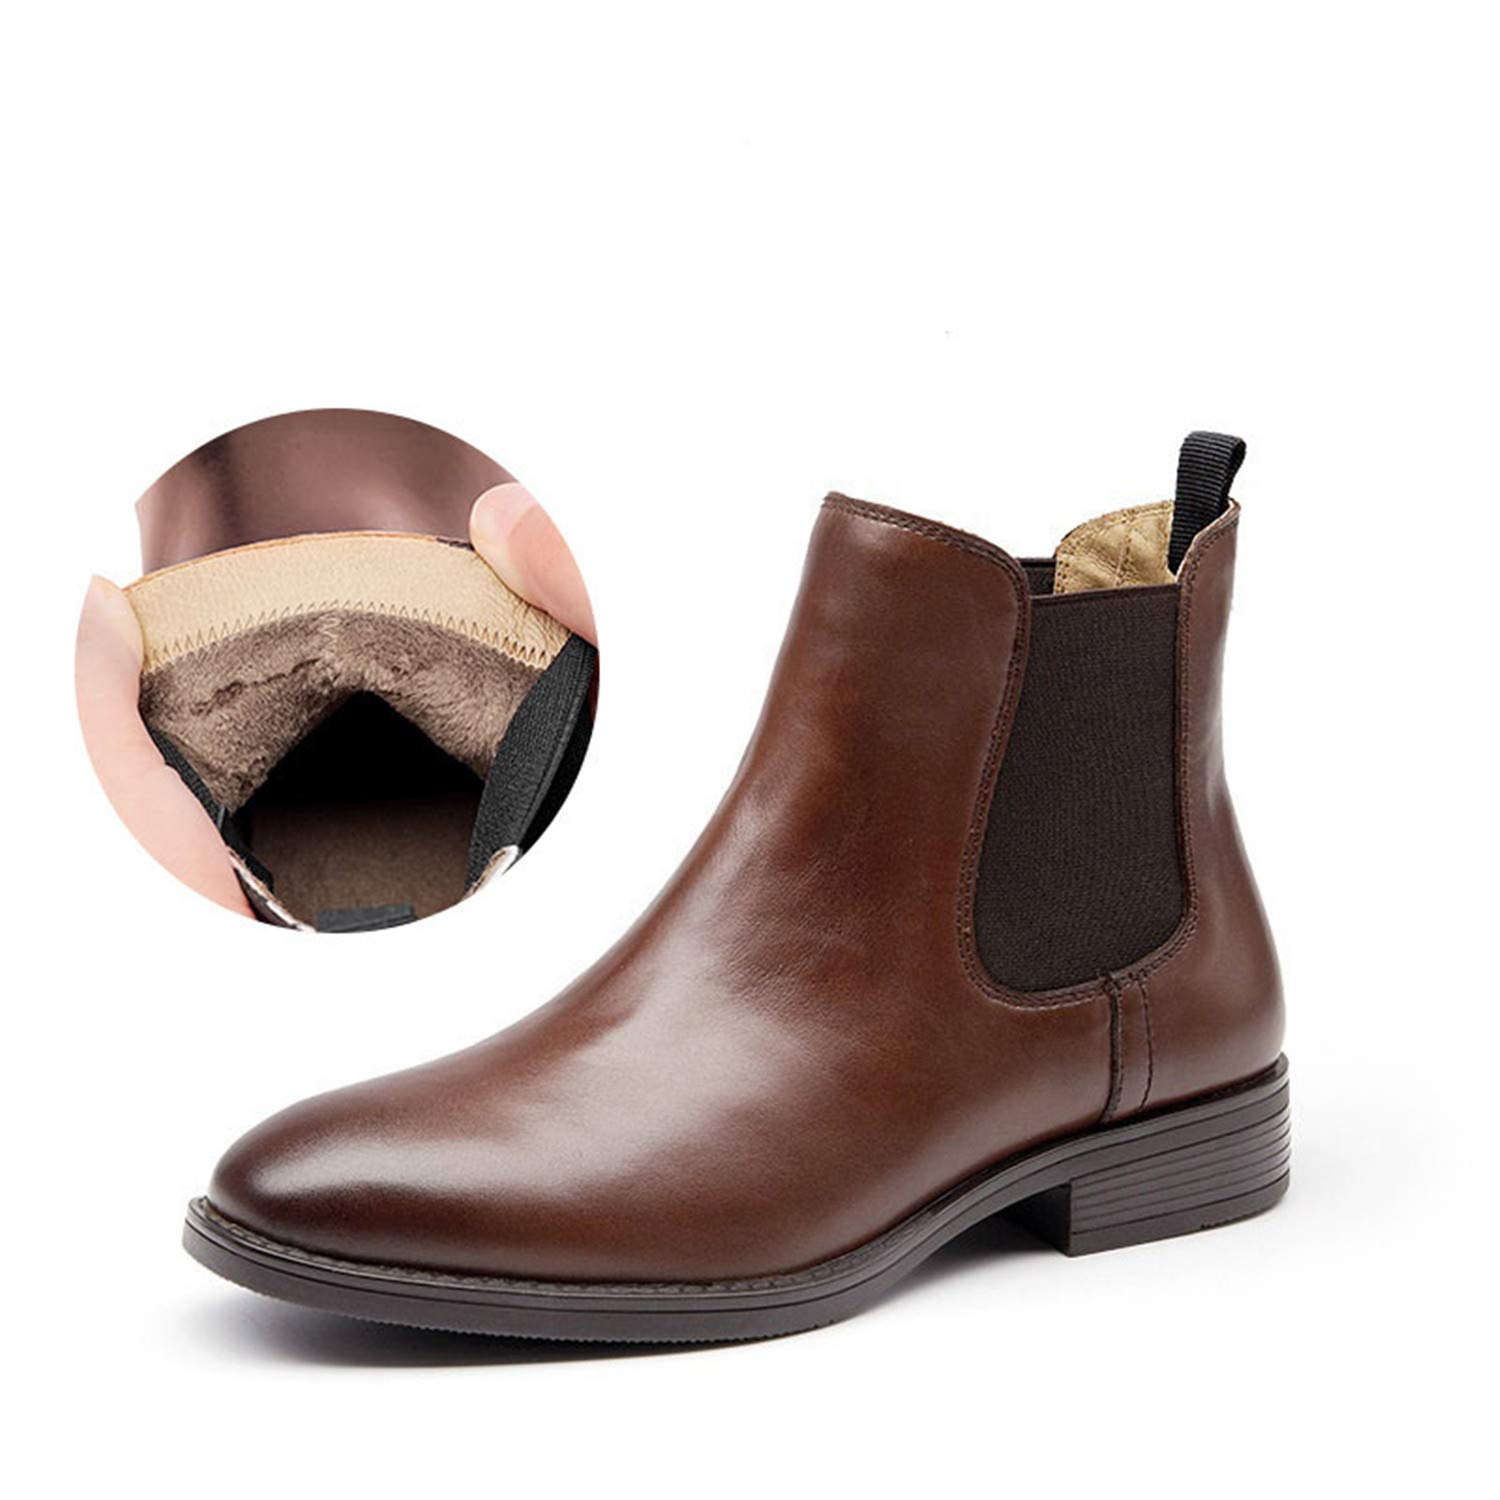 Brown Short Plush Chelsea Boots Women Genuine Calfskin Leather Autumn Winter Ankle Boot shoes Handmade